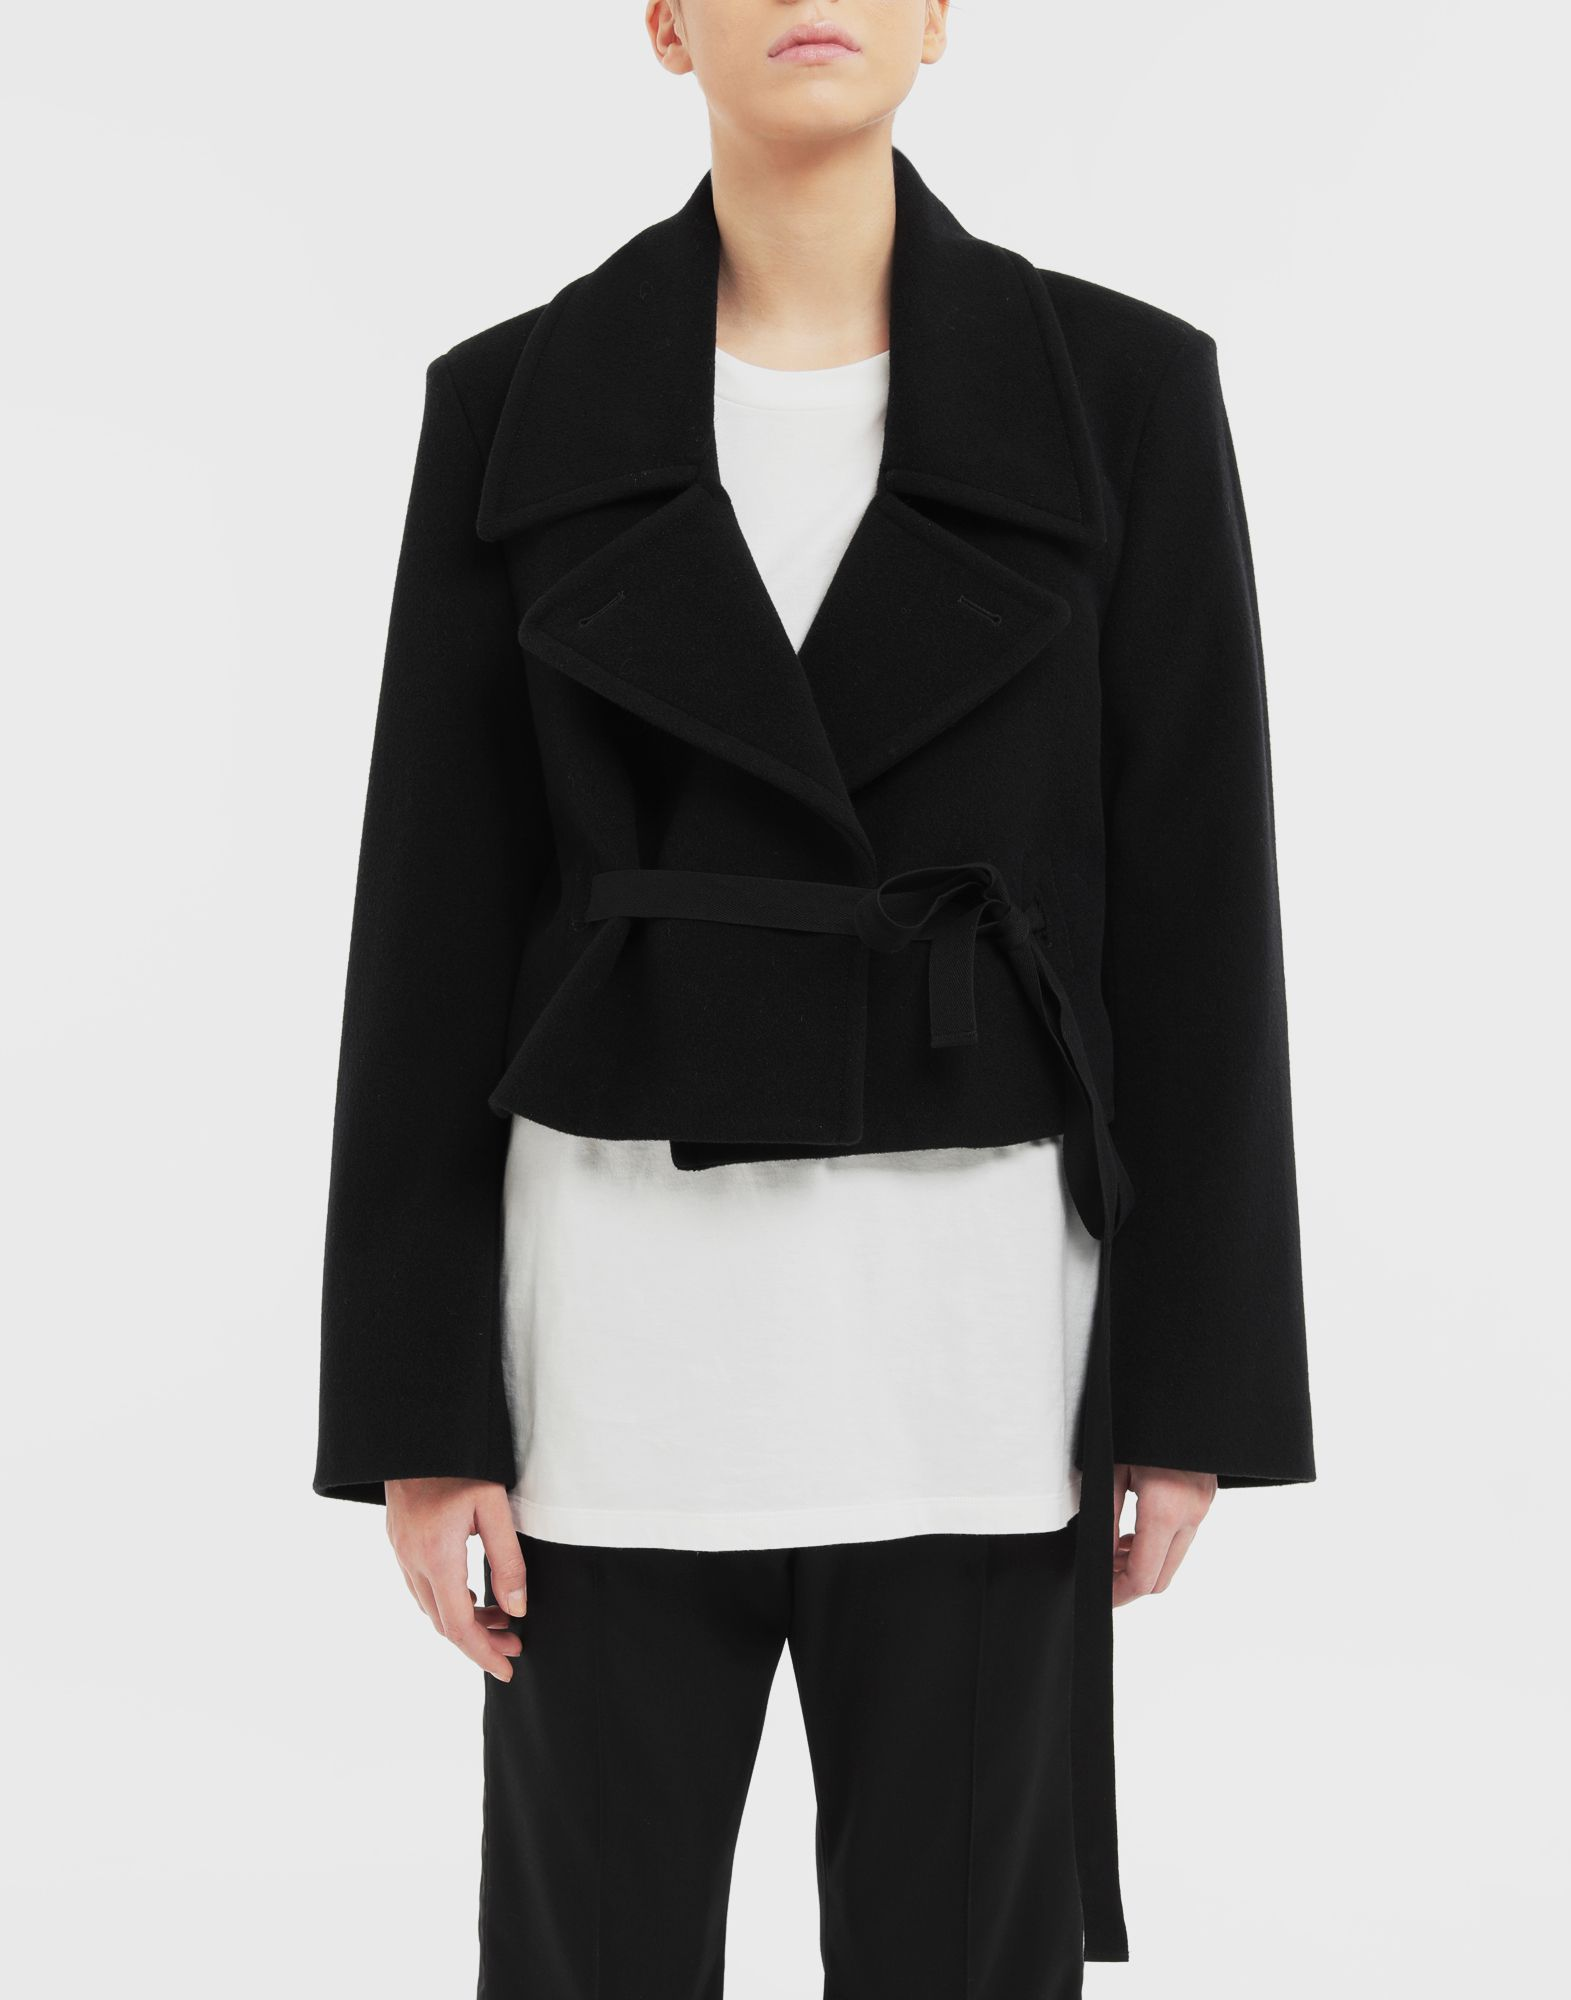 MM6 MAISON MARGIELA Jacket with strings Light jacket Woman r